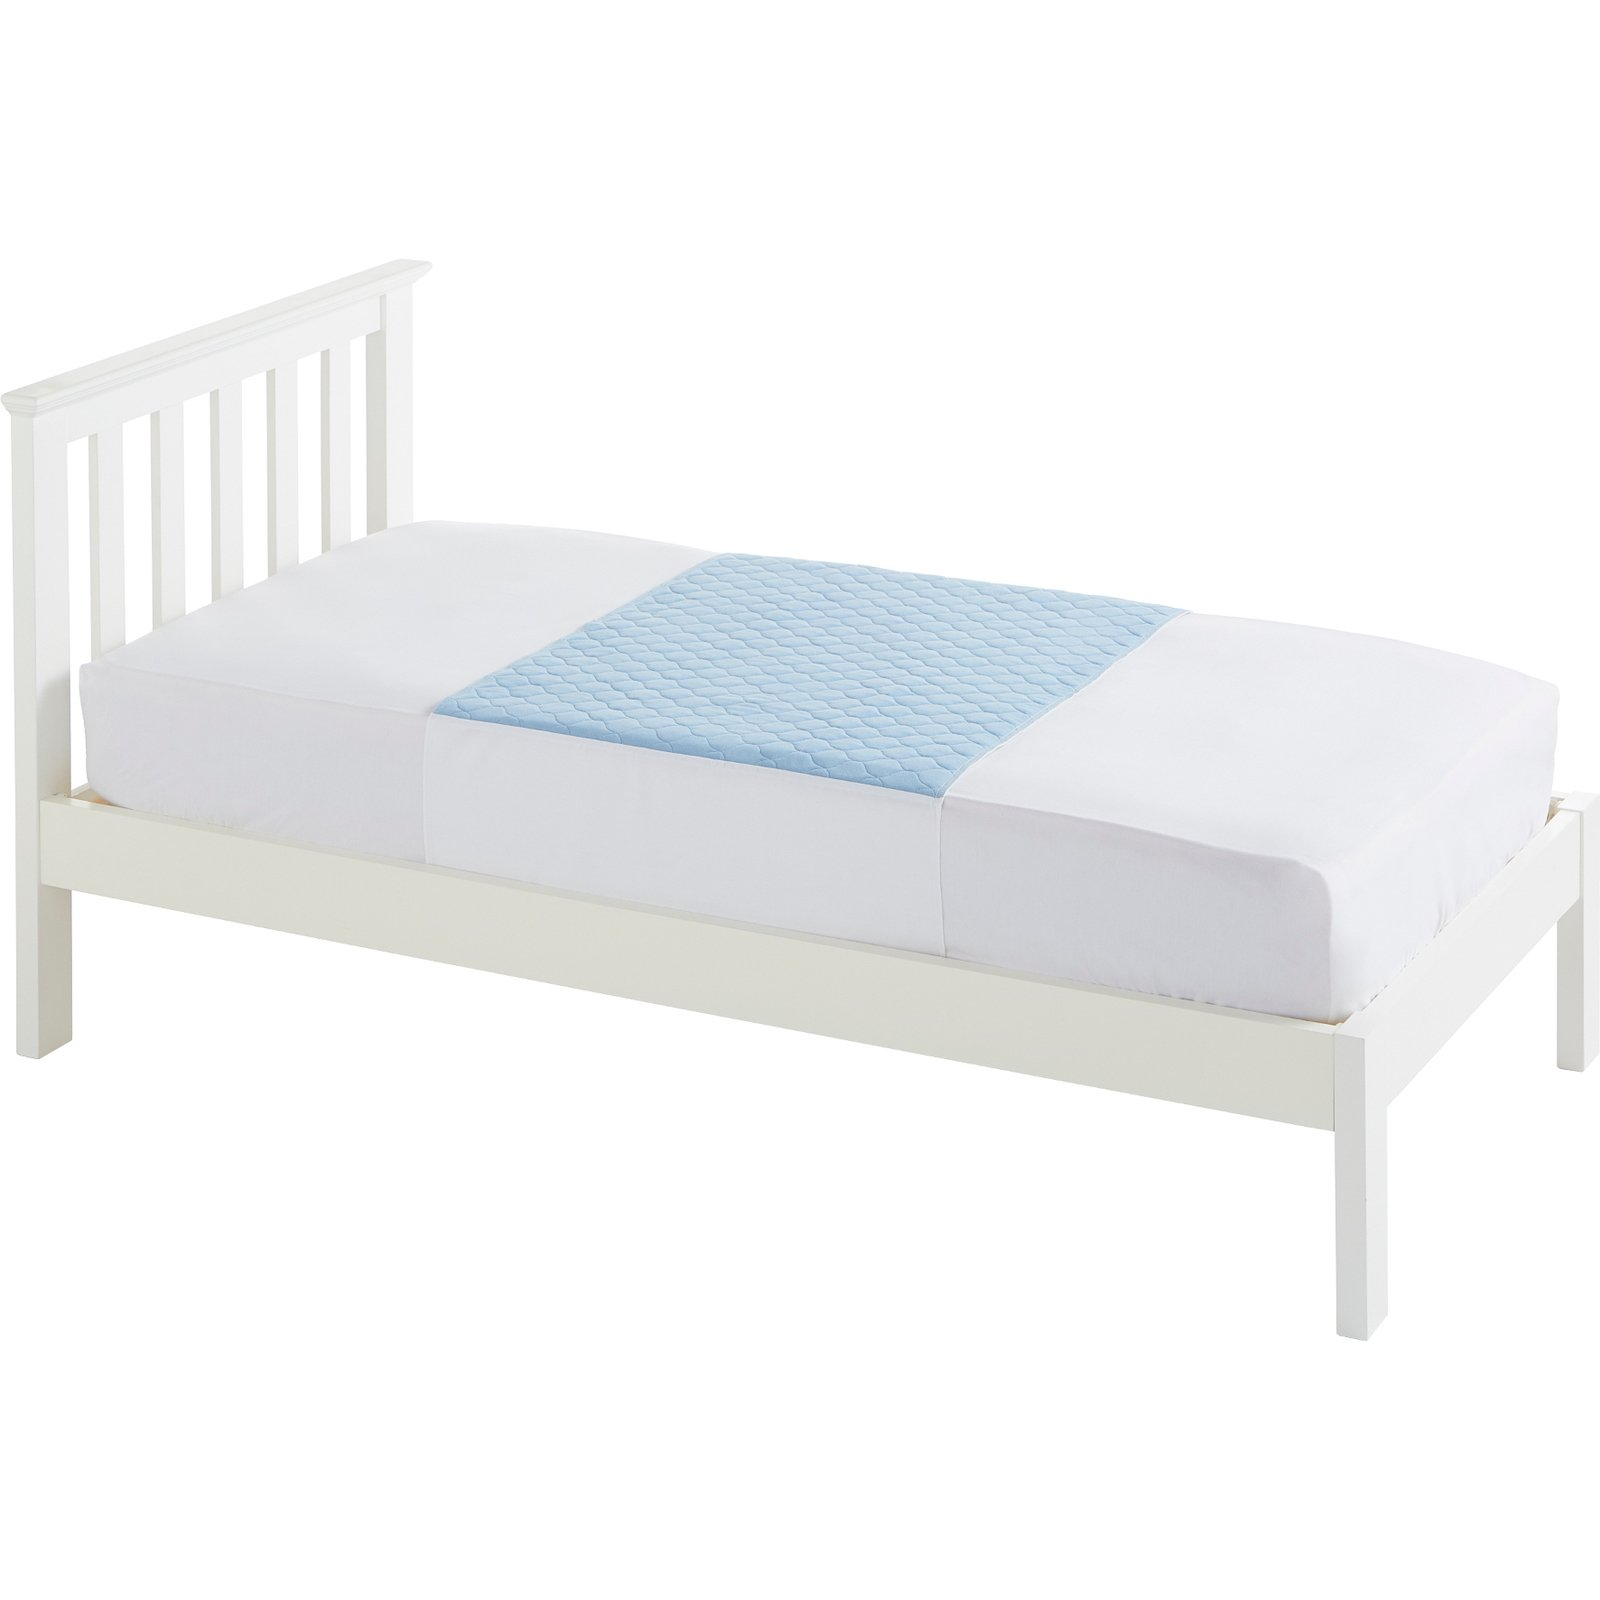 Single Bed 91x74cm Blue